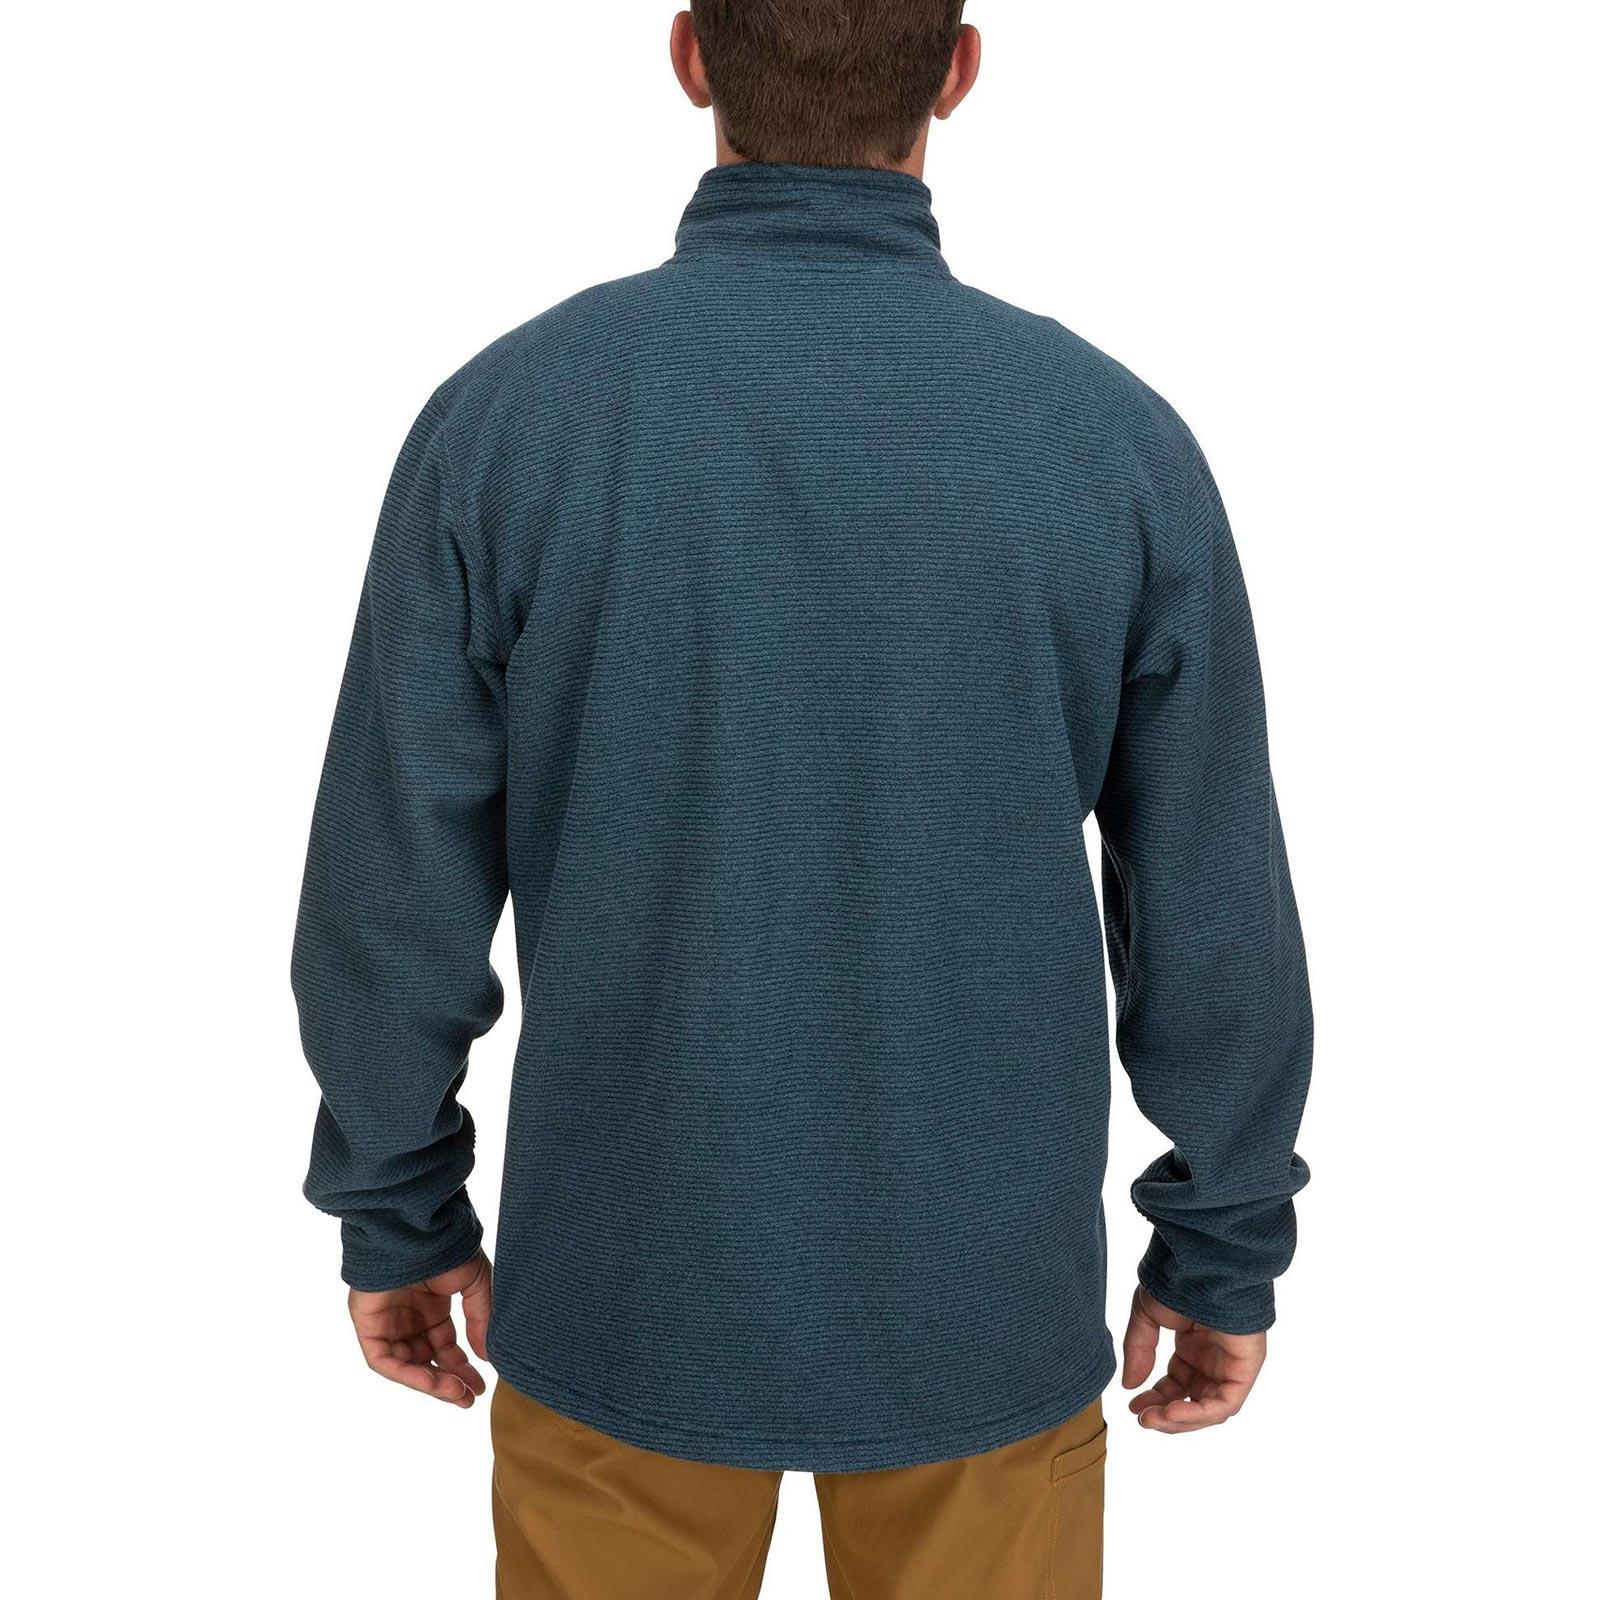 Model View Simms Men's Rivershed Full-Zip Sweater - Dark Moon